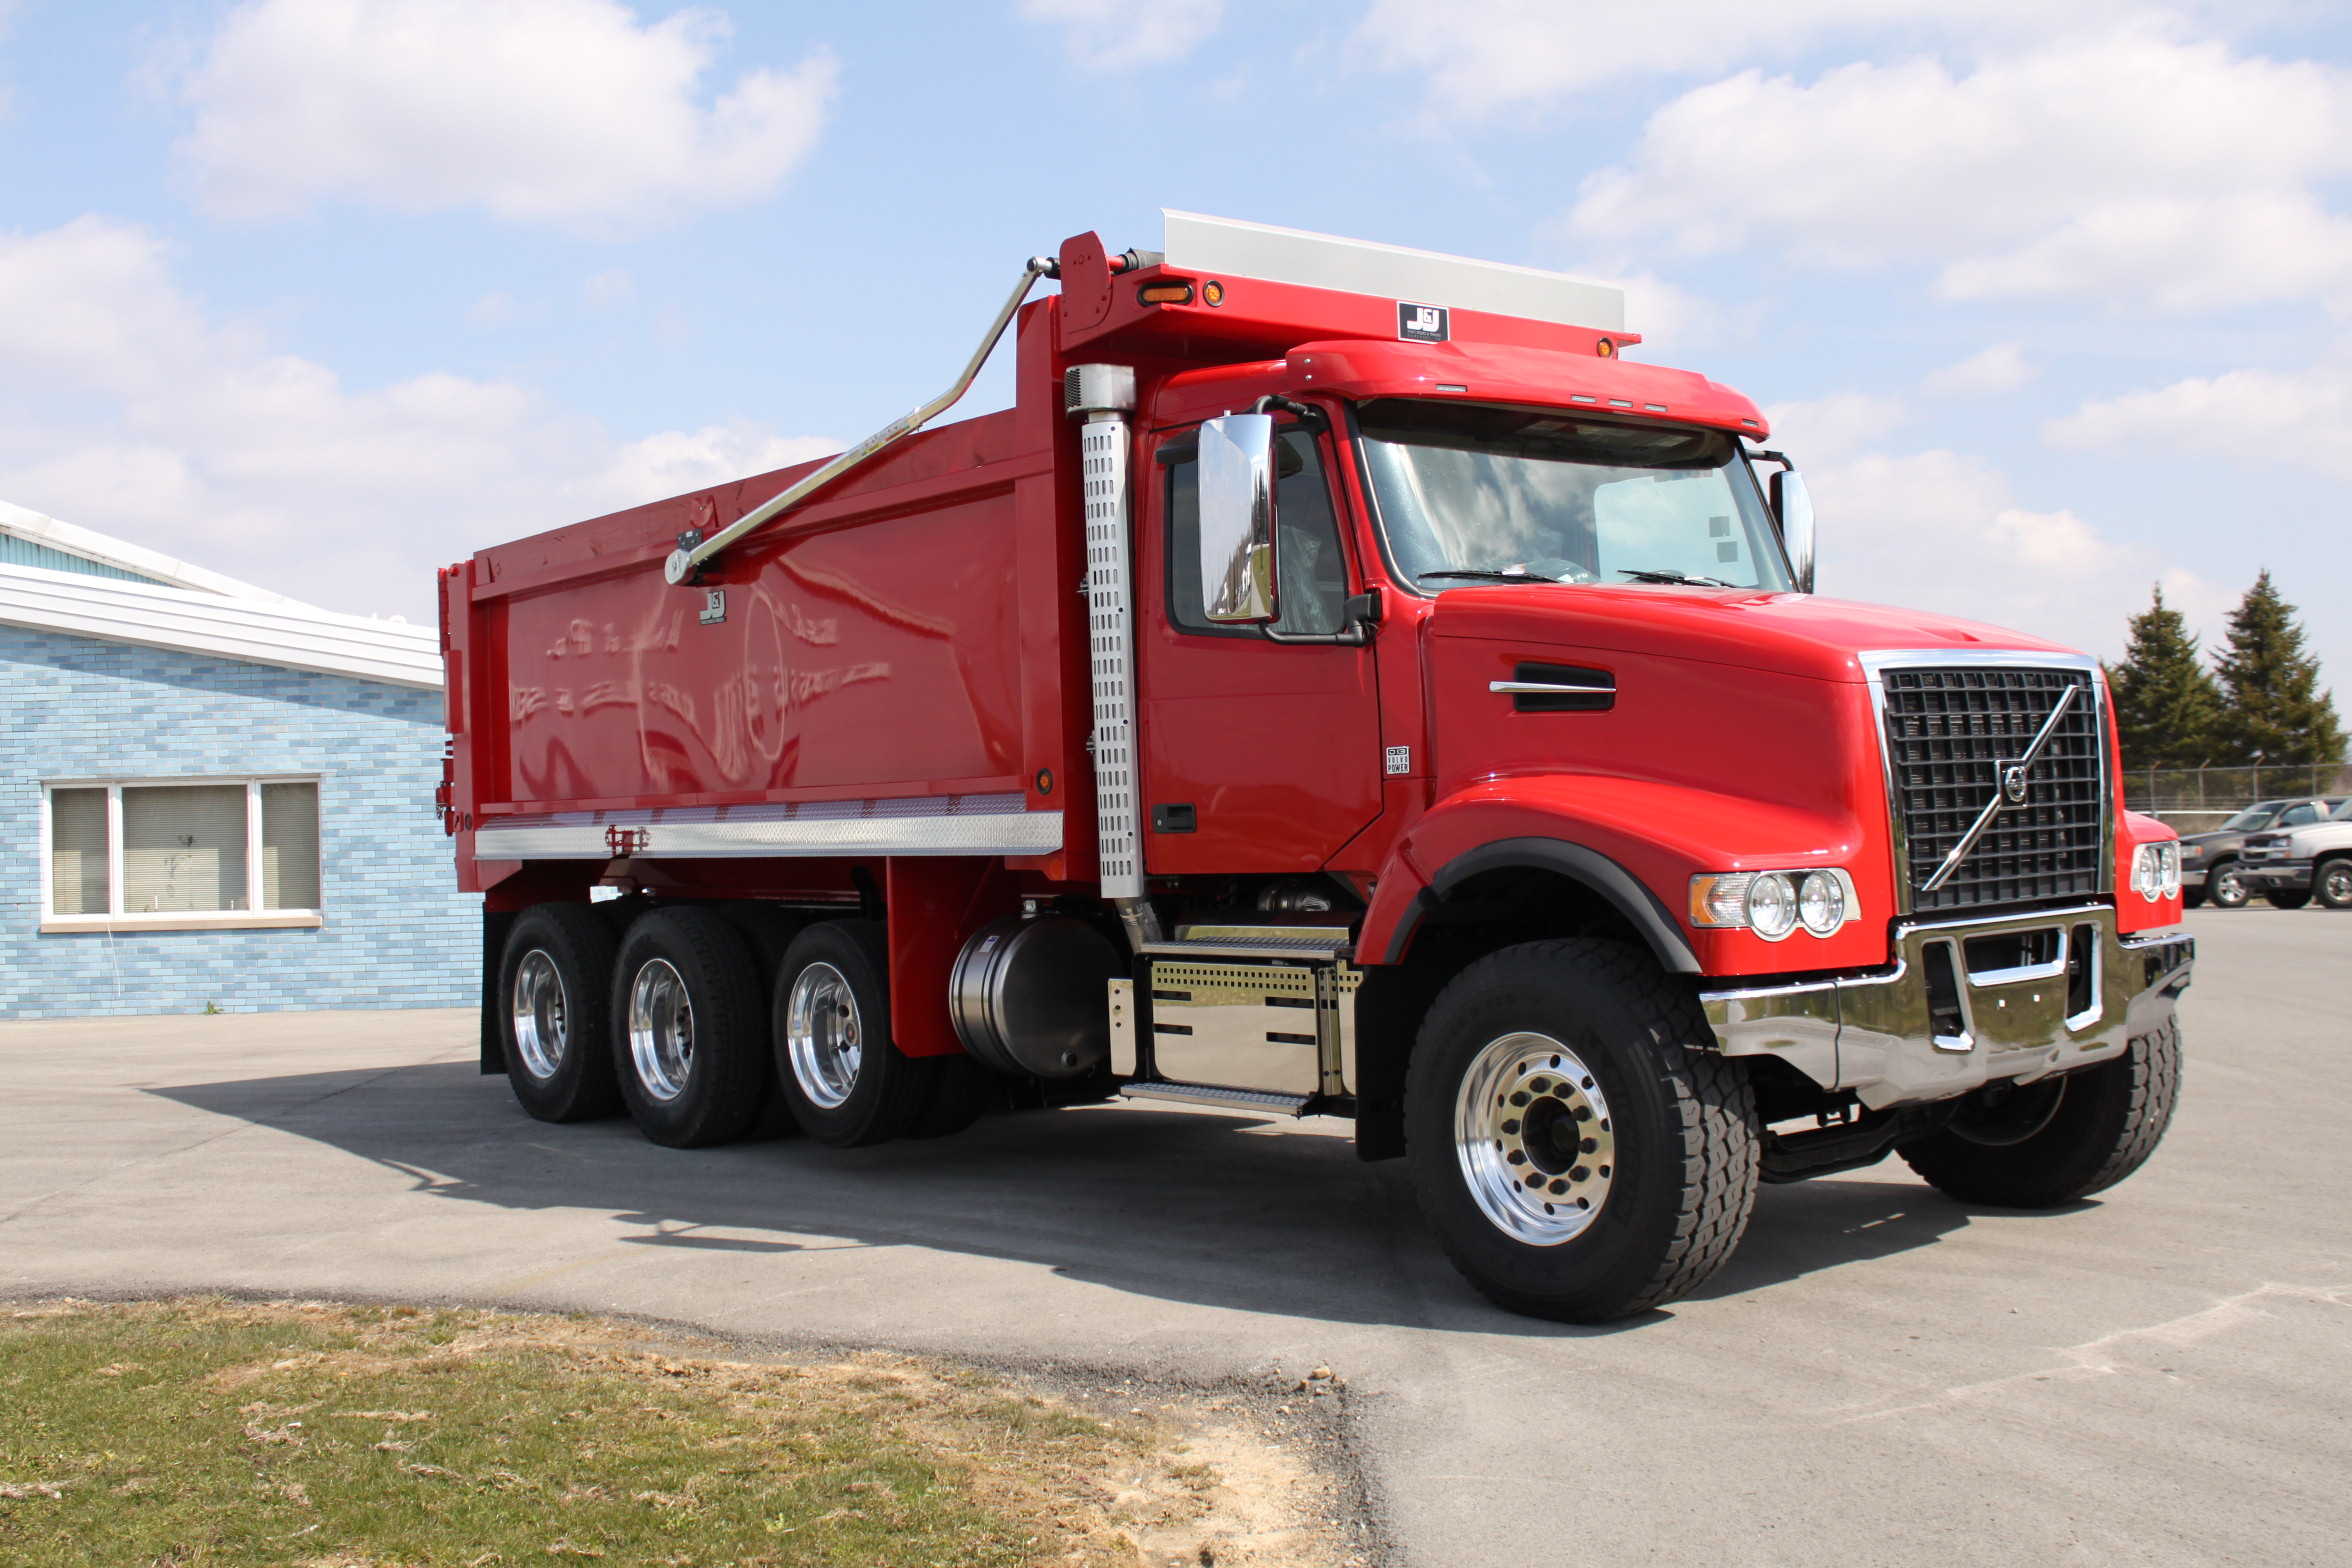 New Truck manufacturer models available in OH